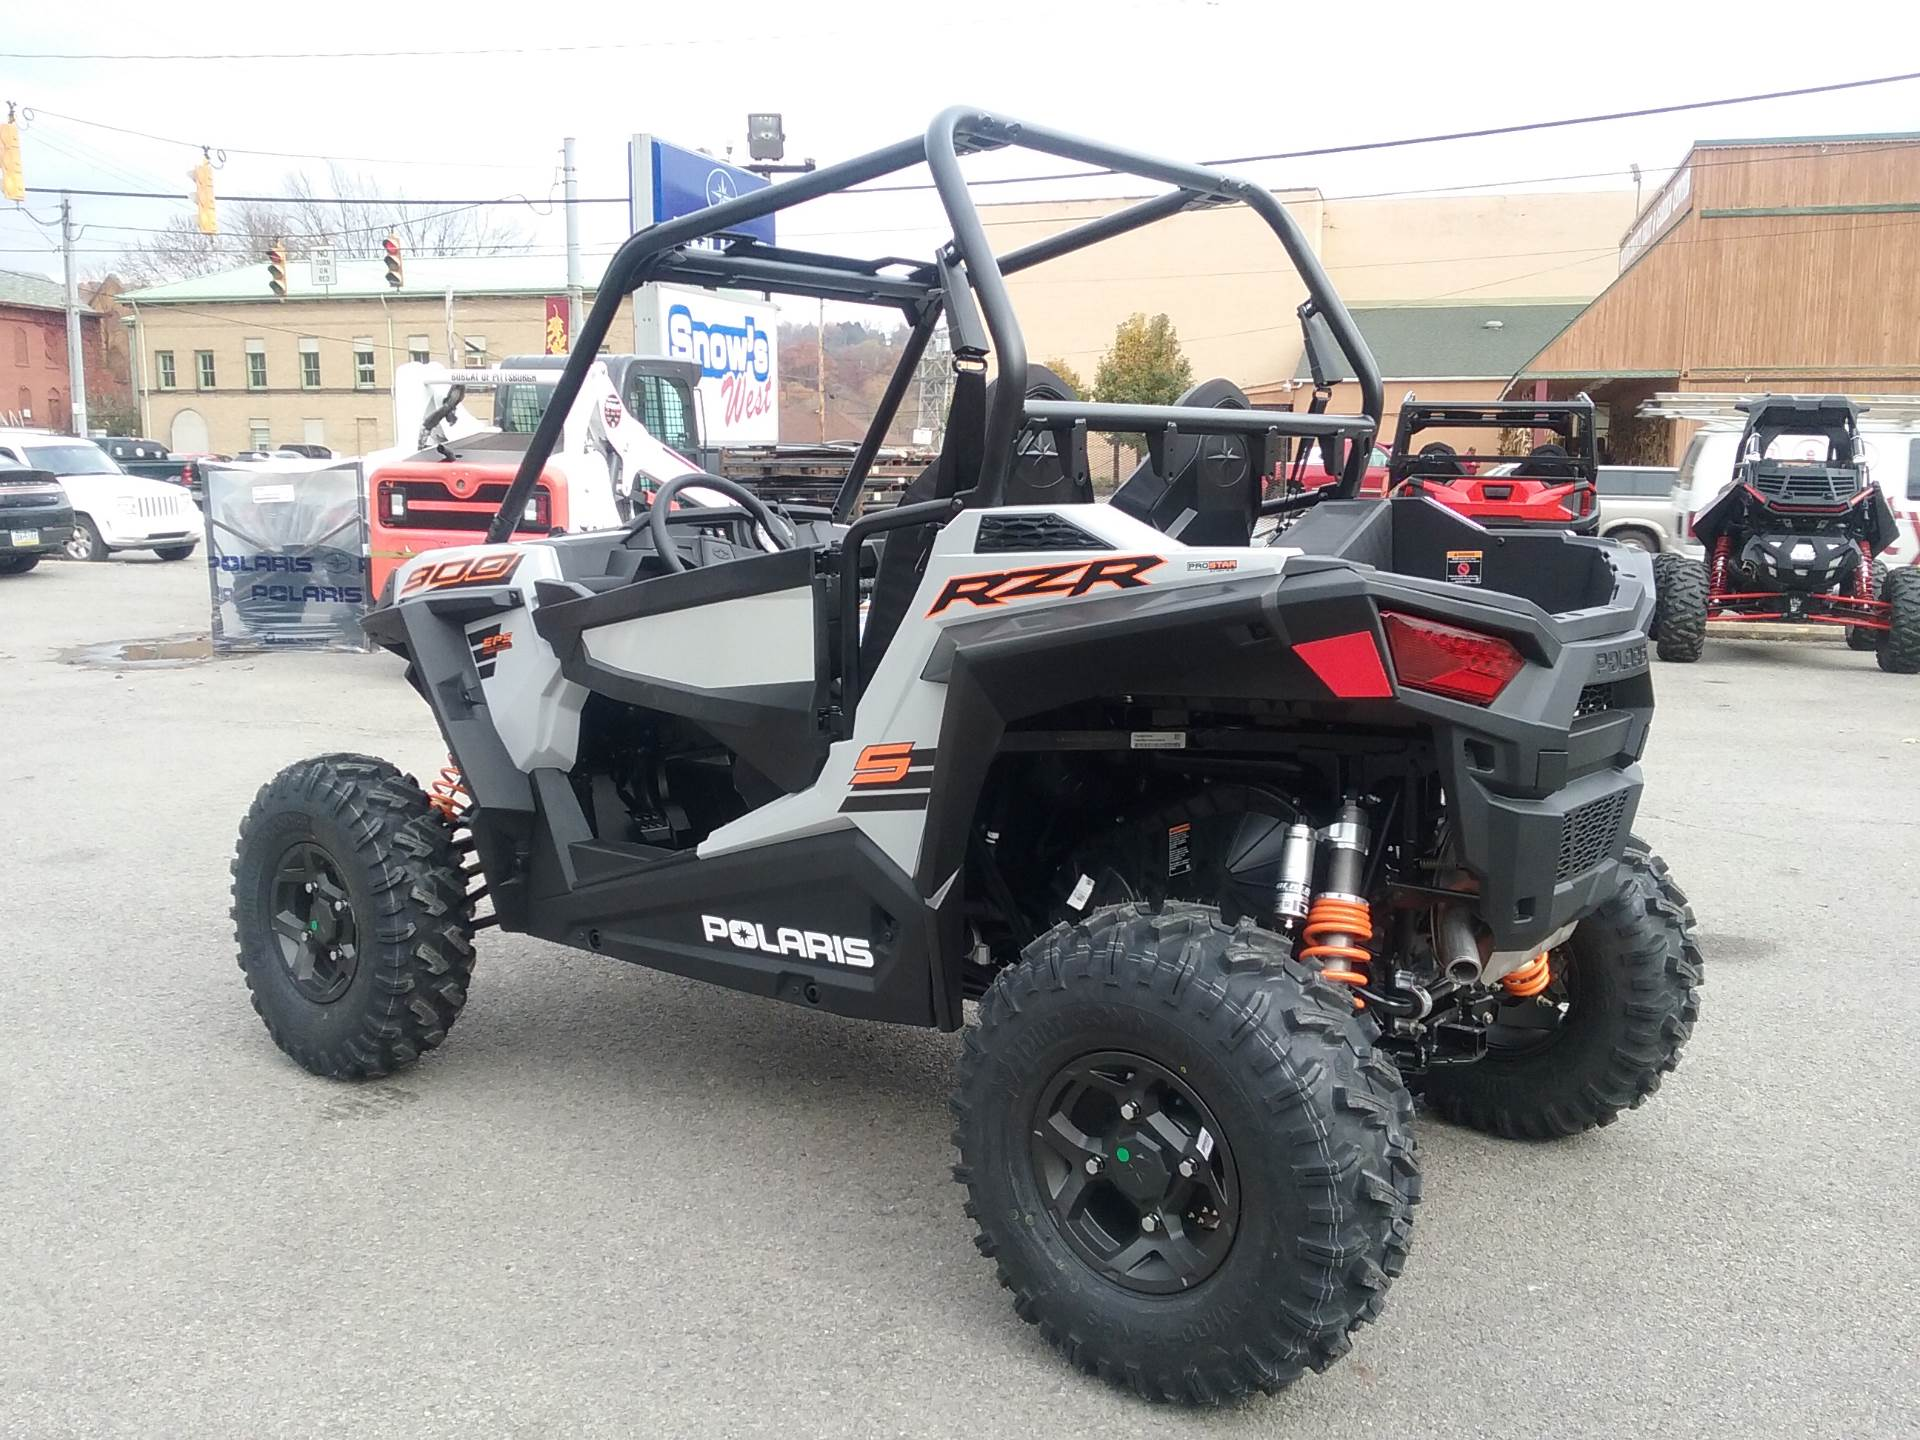 2019 Polaris RZR S 900 EPS in Beaver Falls, Pennsylvania - Photo 9